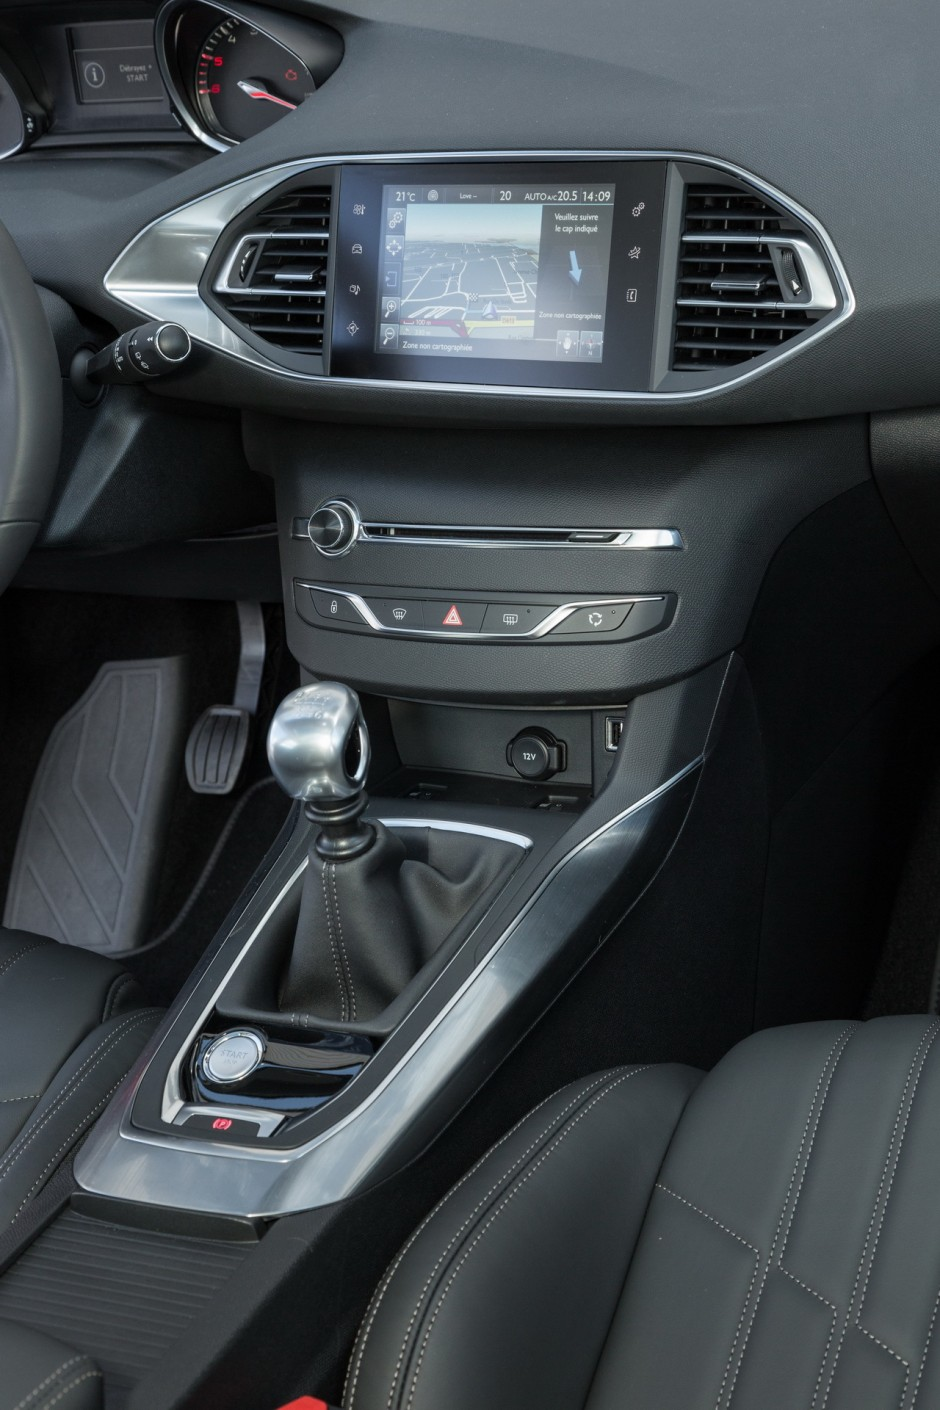 essai peugeot 308 notre avis sur la nouvelle 308 1 6 e hdi de 115 ch photo 27 l 39 argus. Black Bedroom Furniture Sets. Home Design Ideas